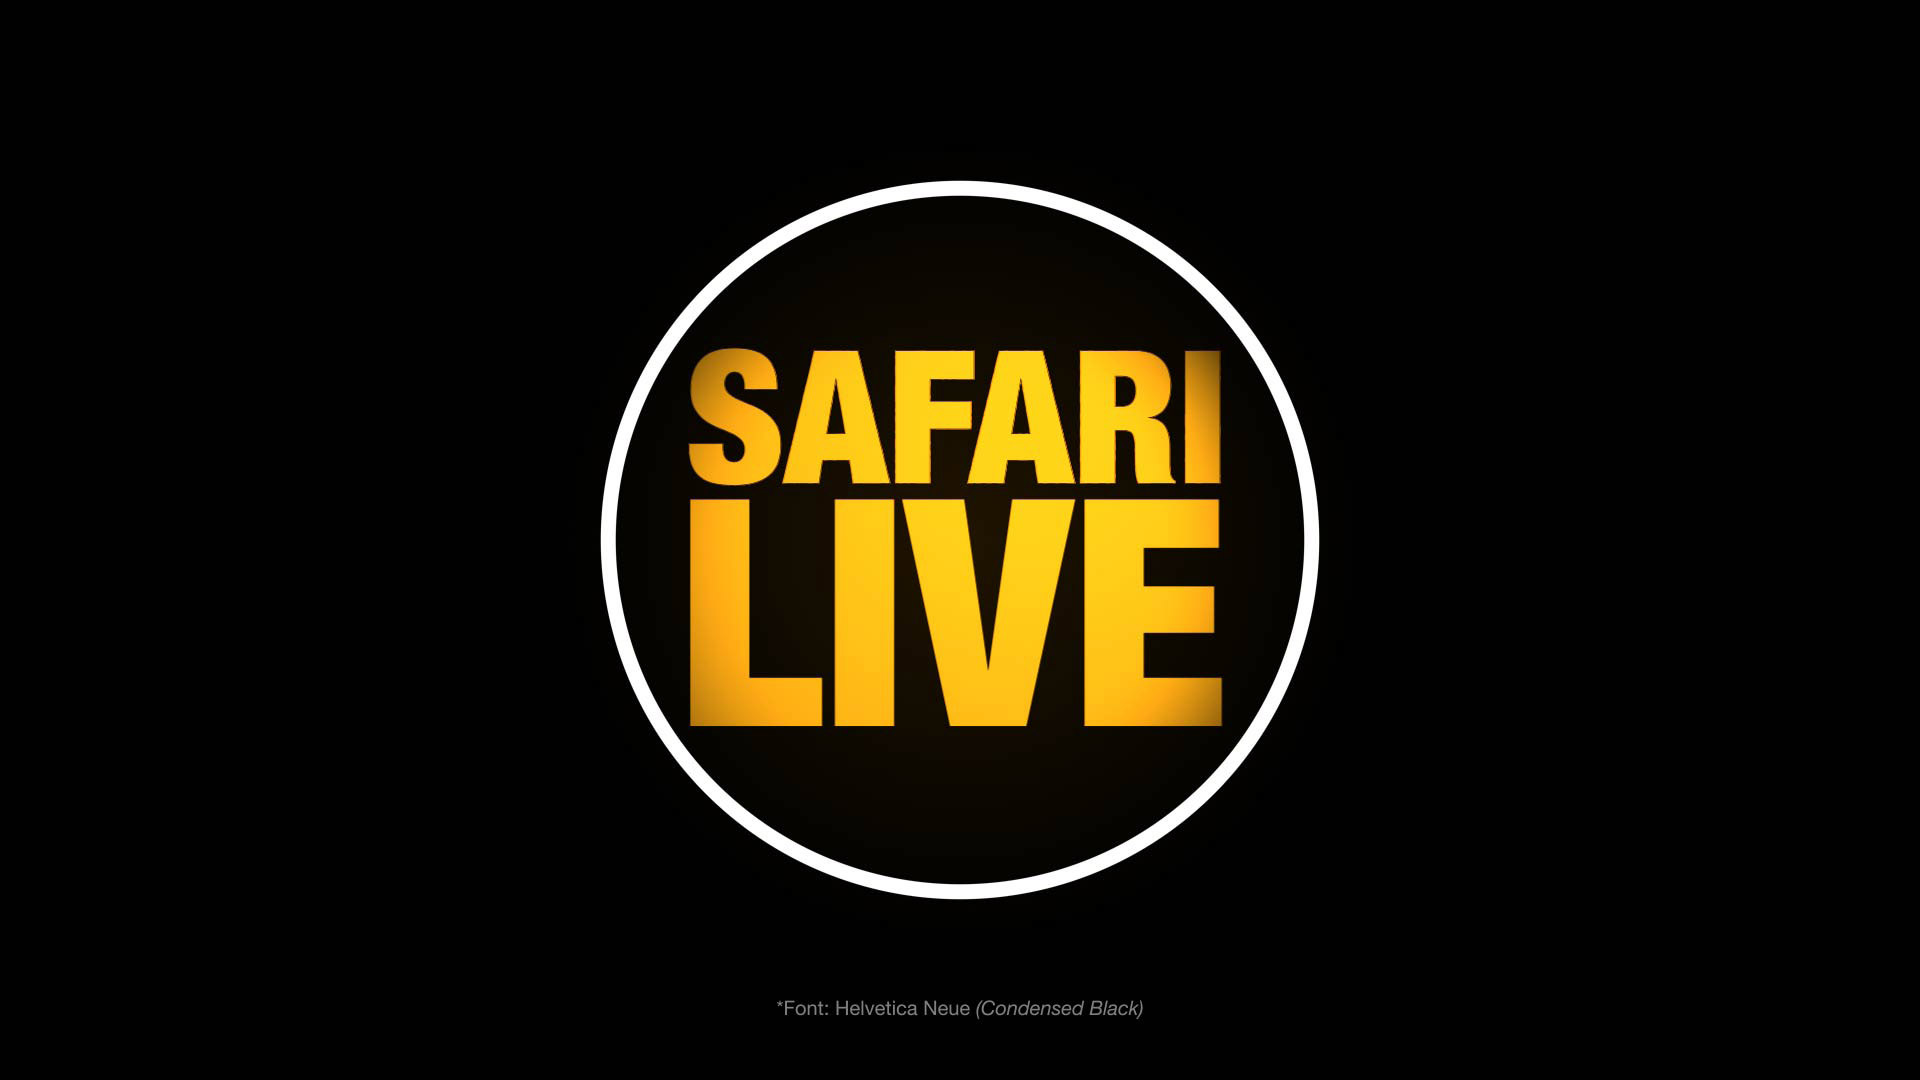 NAT_GEO_SAFARI_LIVE_CONCEPTS_2_27TH_OCT_17-8